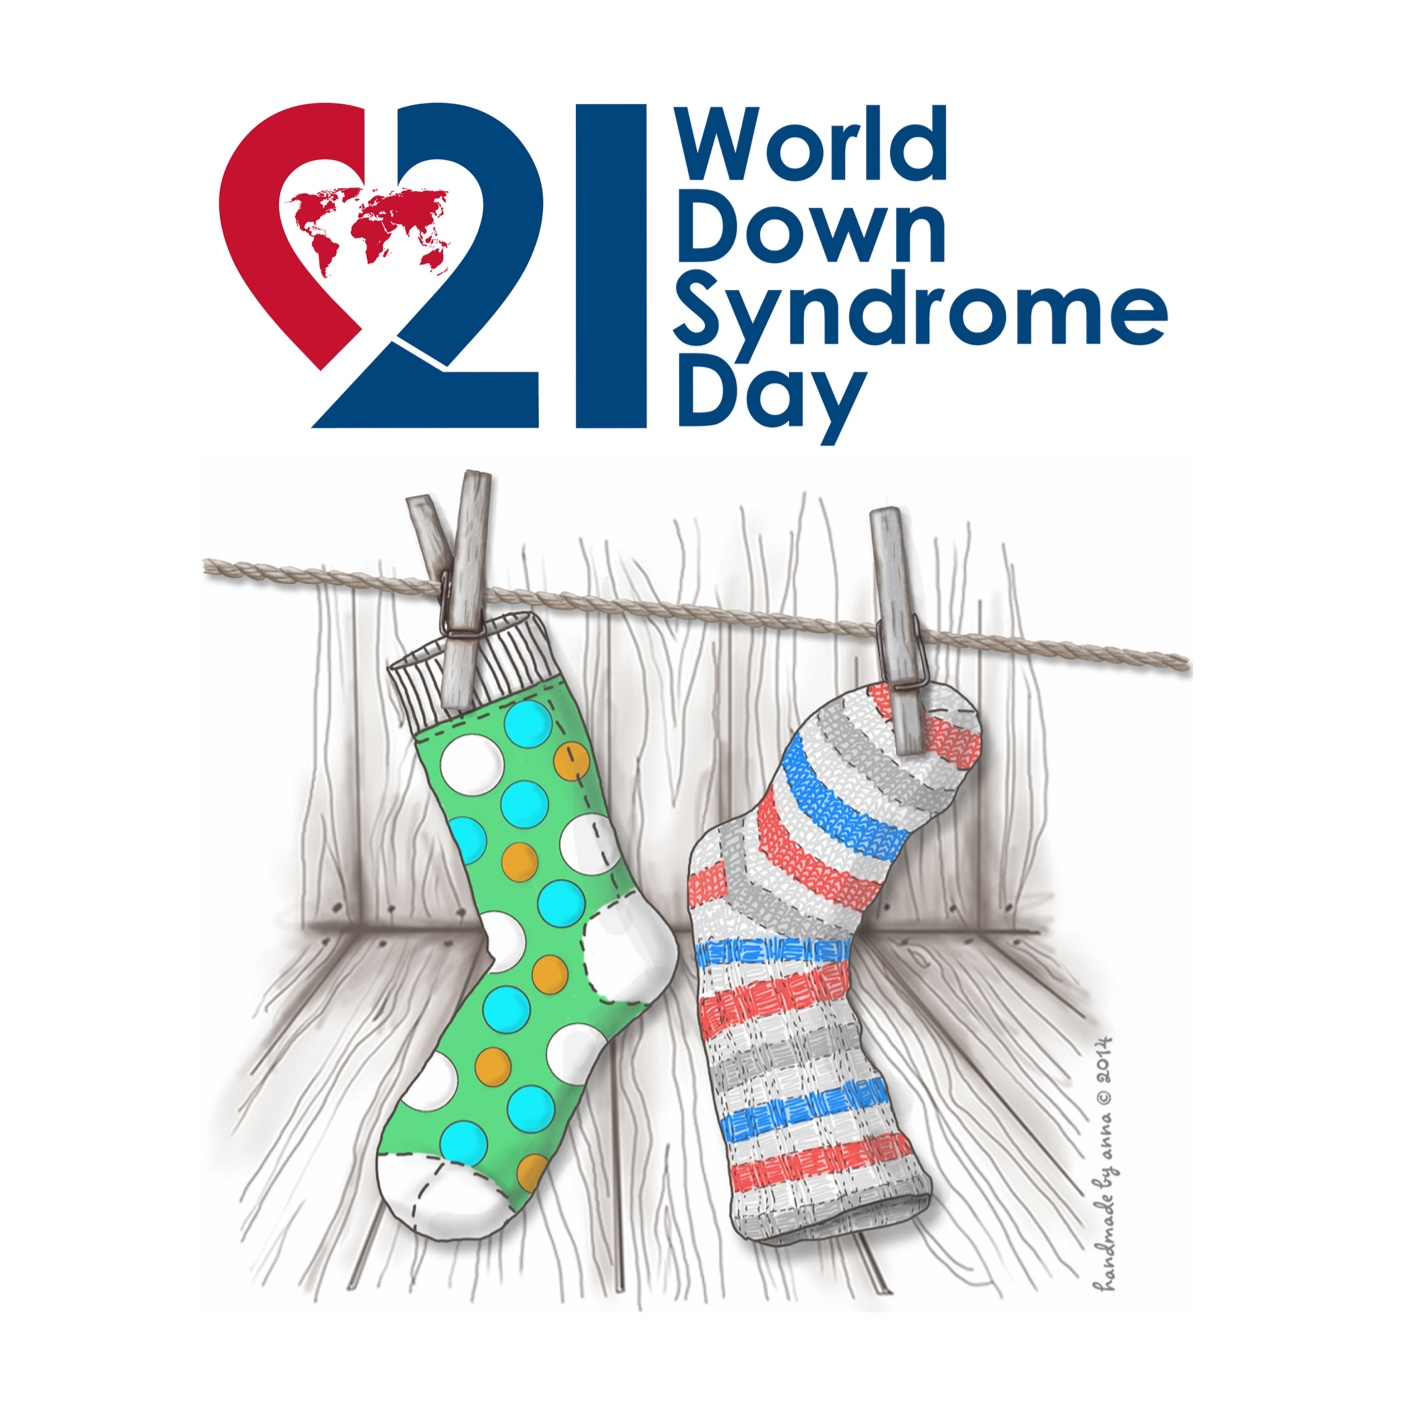 World Down Syndrome Day 2015 World Downs Syndrome Day 21